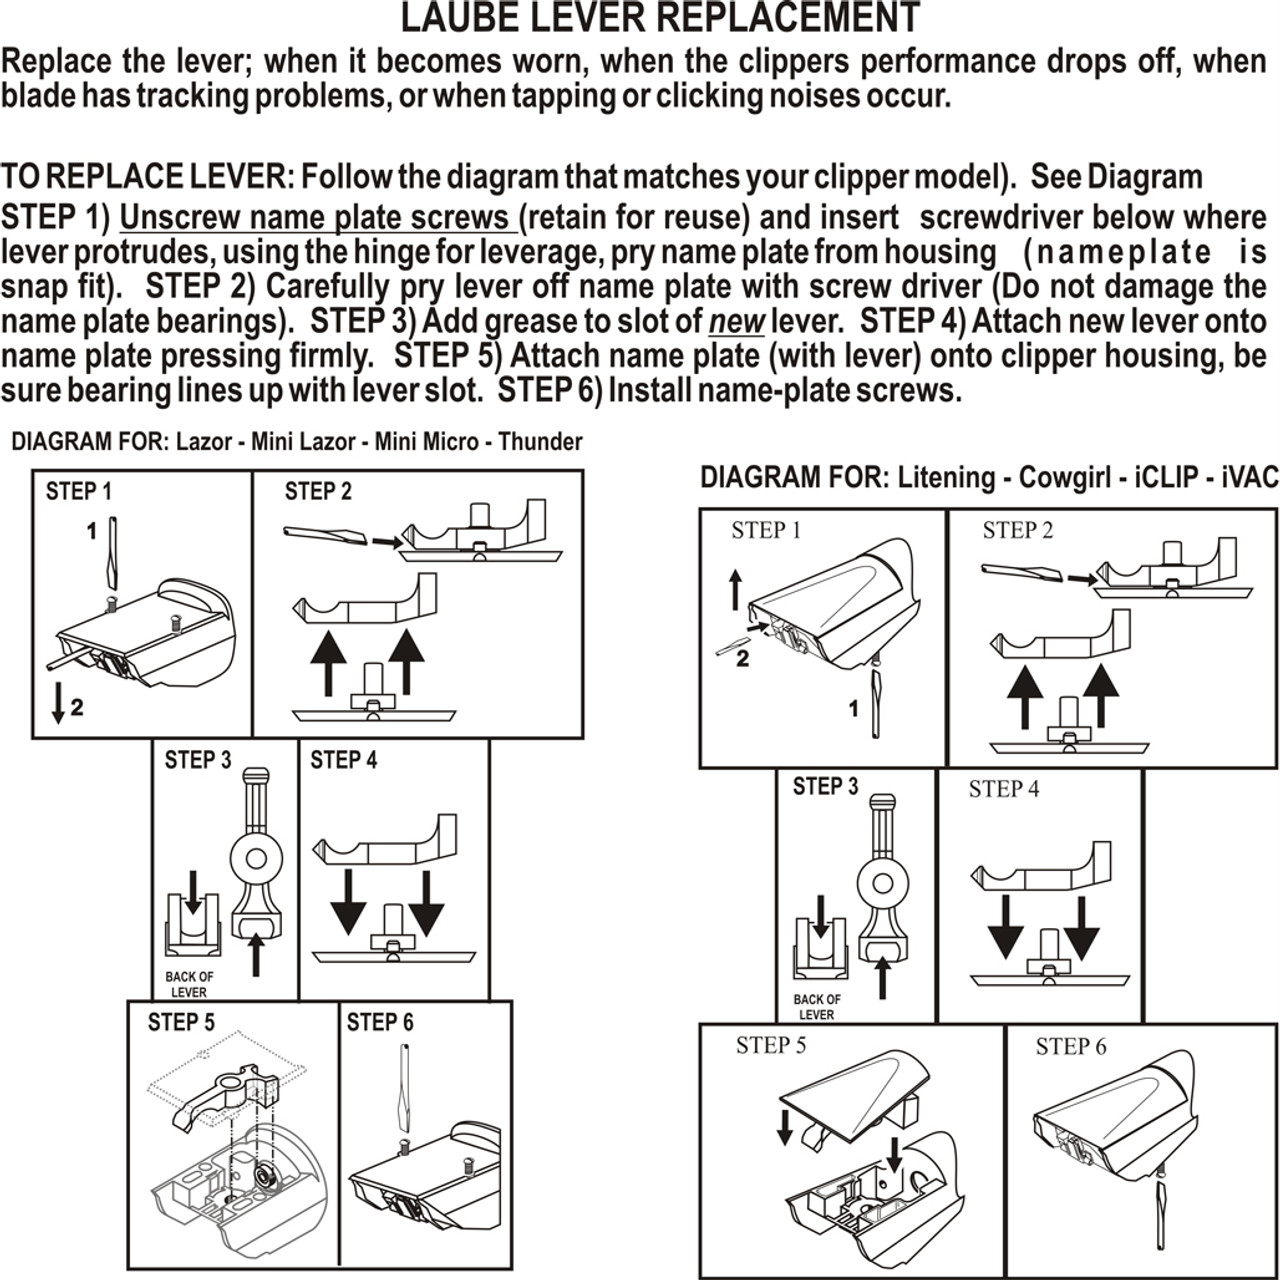 Instructions for super duty lever replacement.